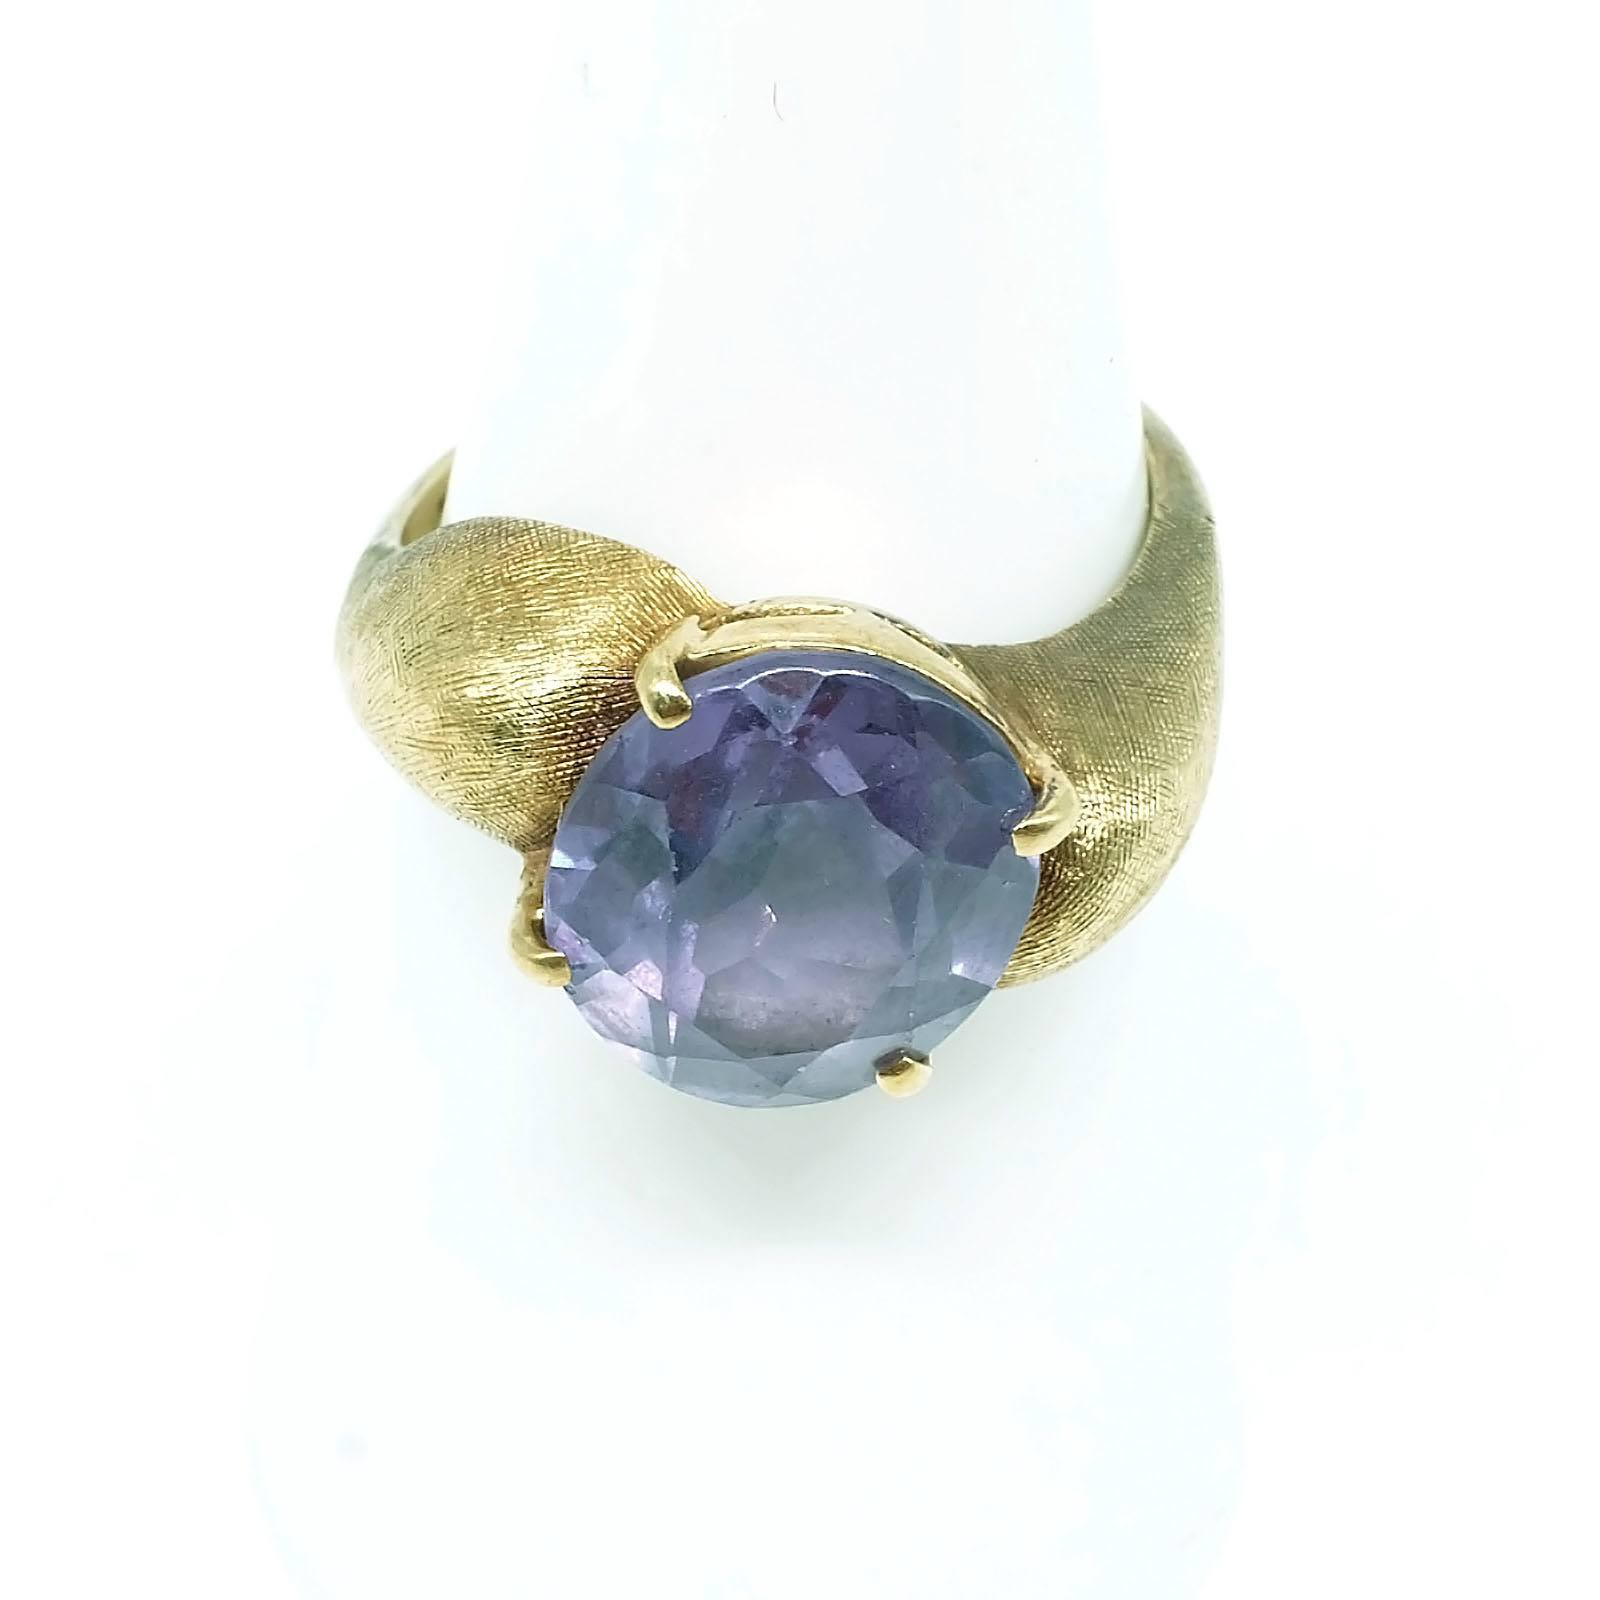 '14ct Yellow Gold Ring with Oval Facetted Synthetic Sapphire, High Dome Shoulders, 5.2g'